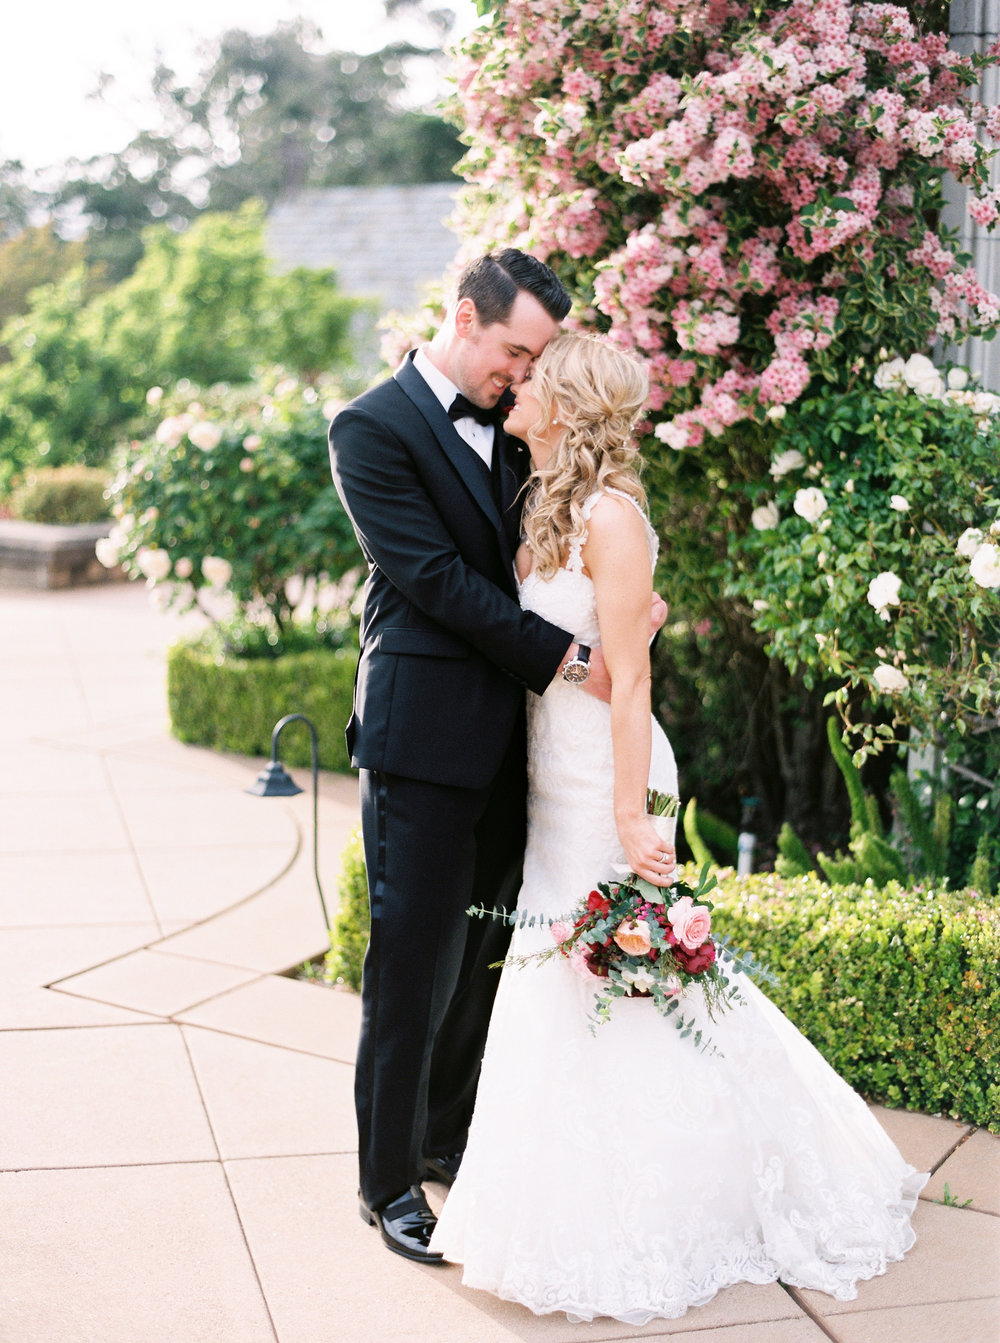 spring-inspired-wedding-at-kohl-mansion-burlingame-california-145.jpg